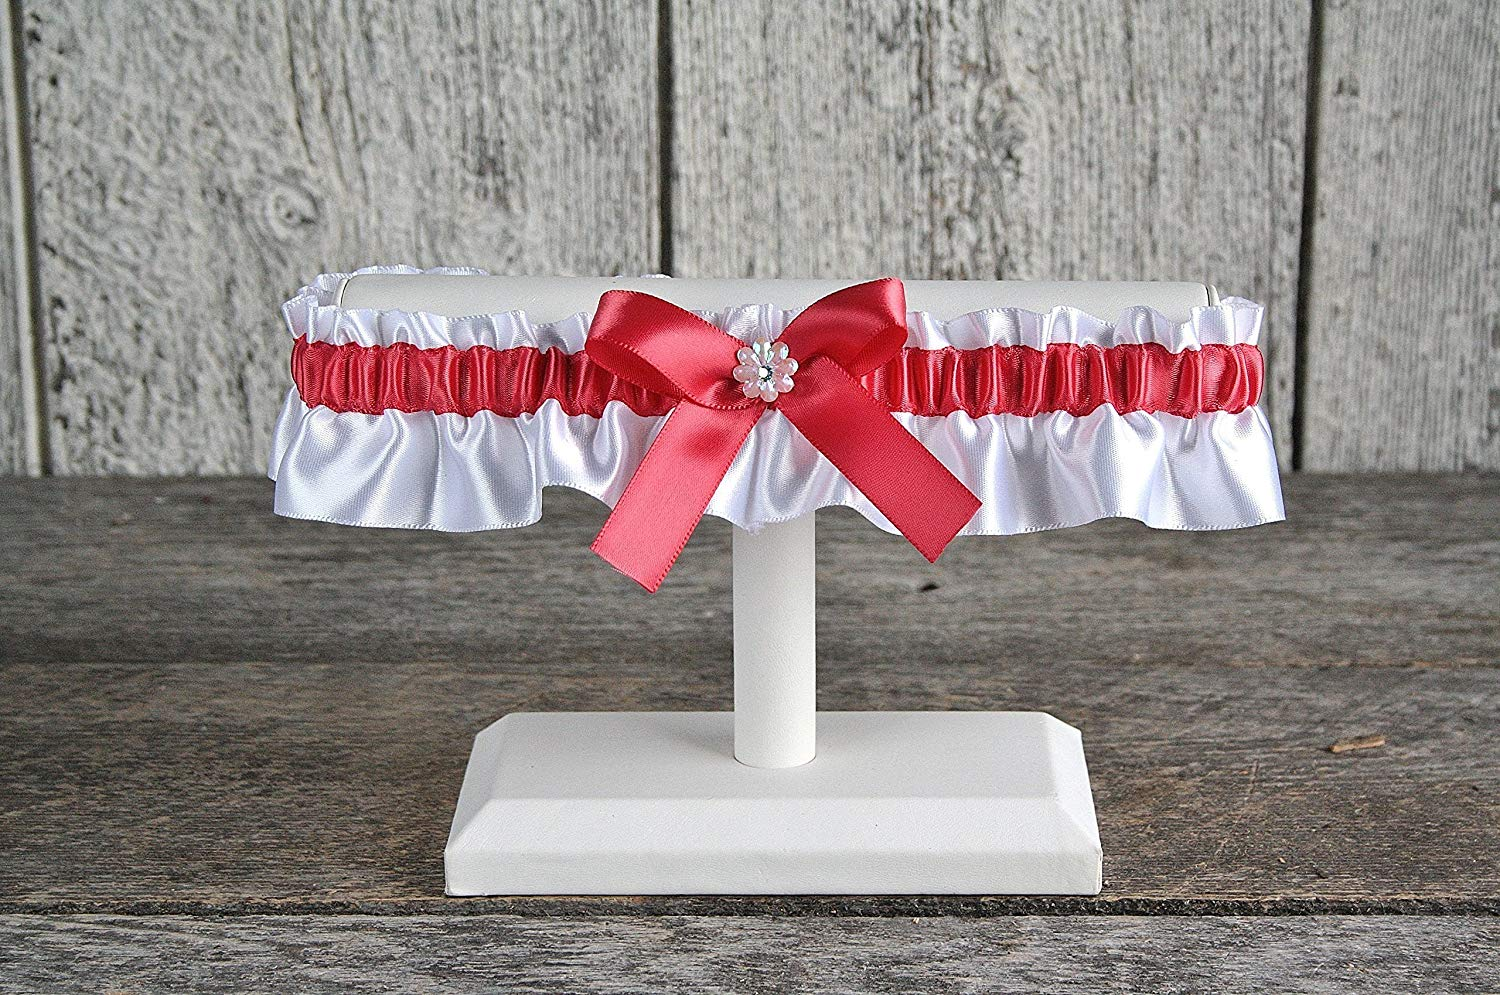 6a3ae018e25 Get Quotations · Coral and white satin wedding garter with iridescent  flower and rhinestone